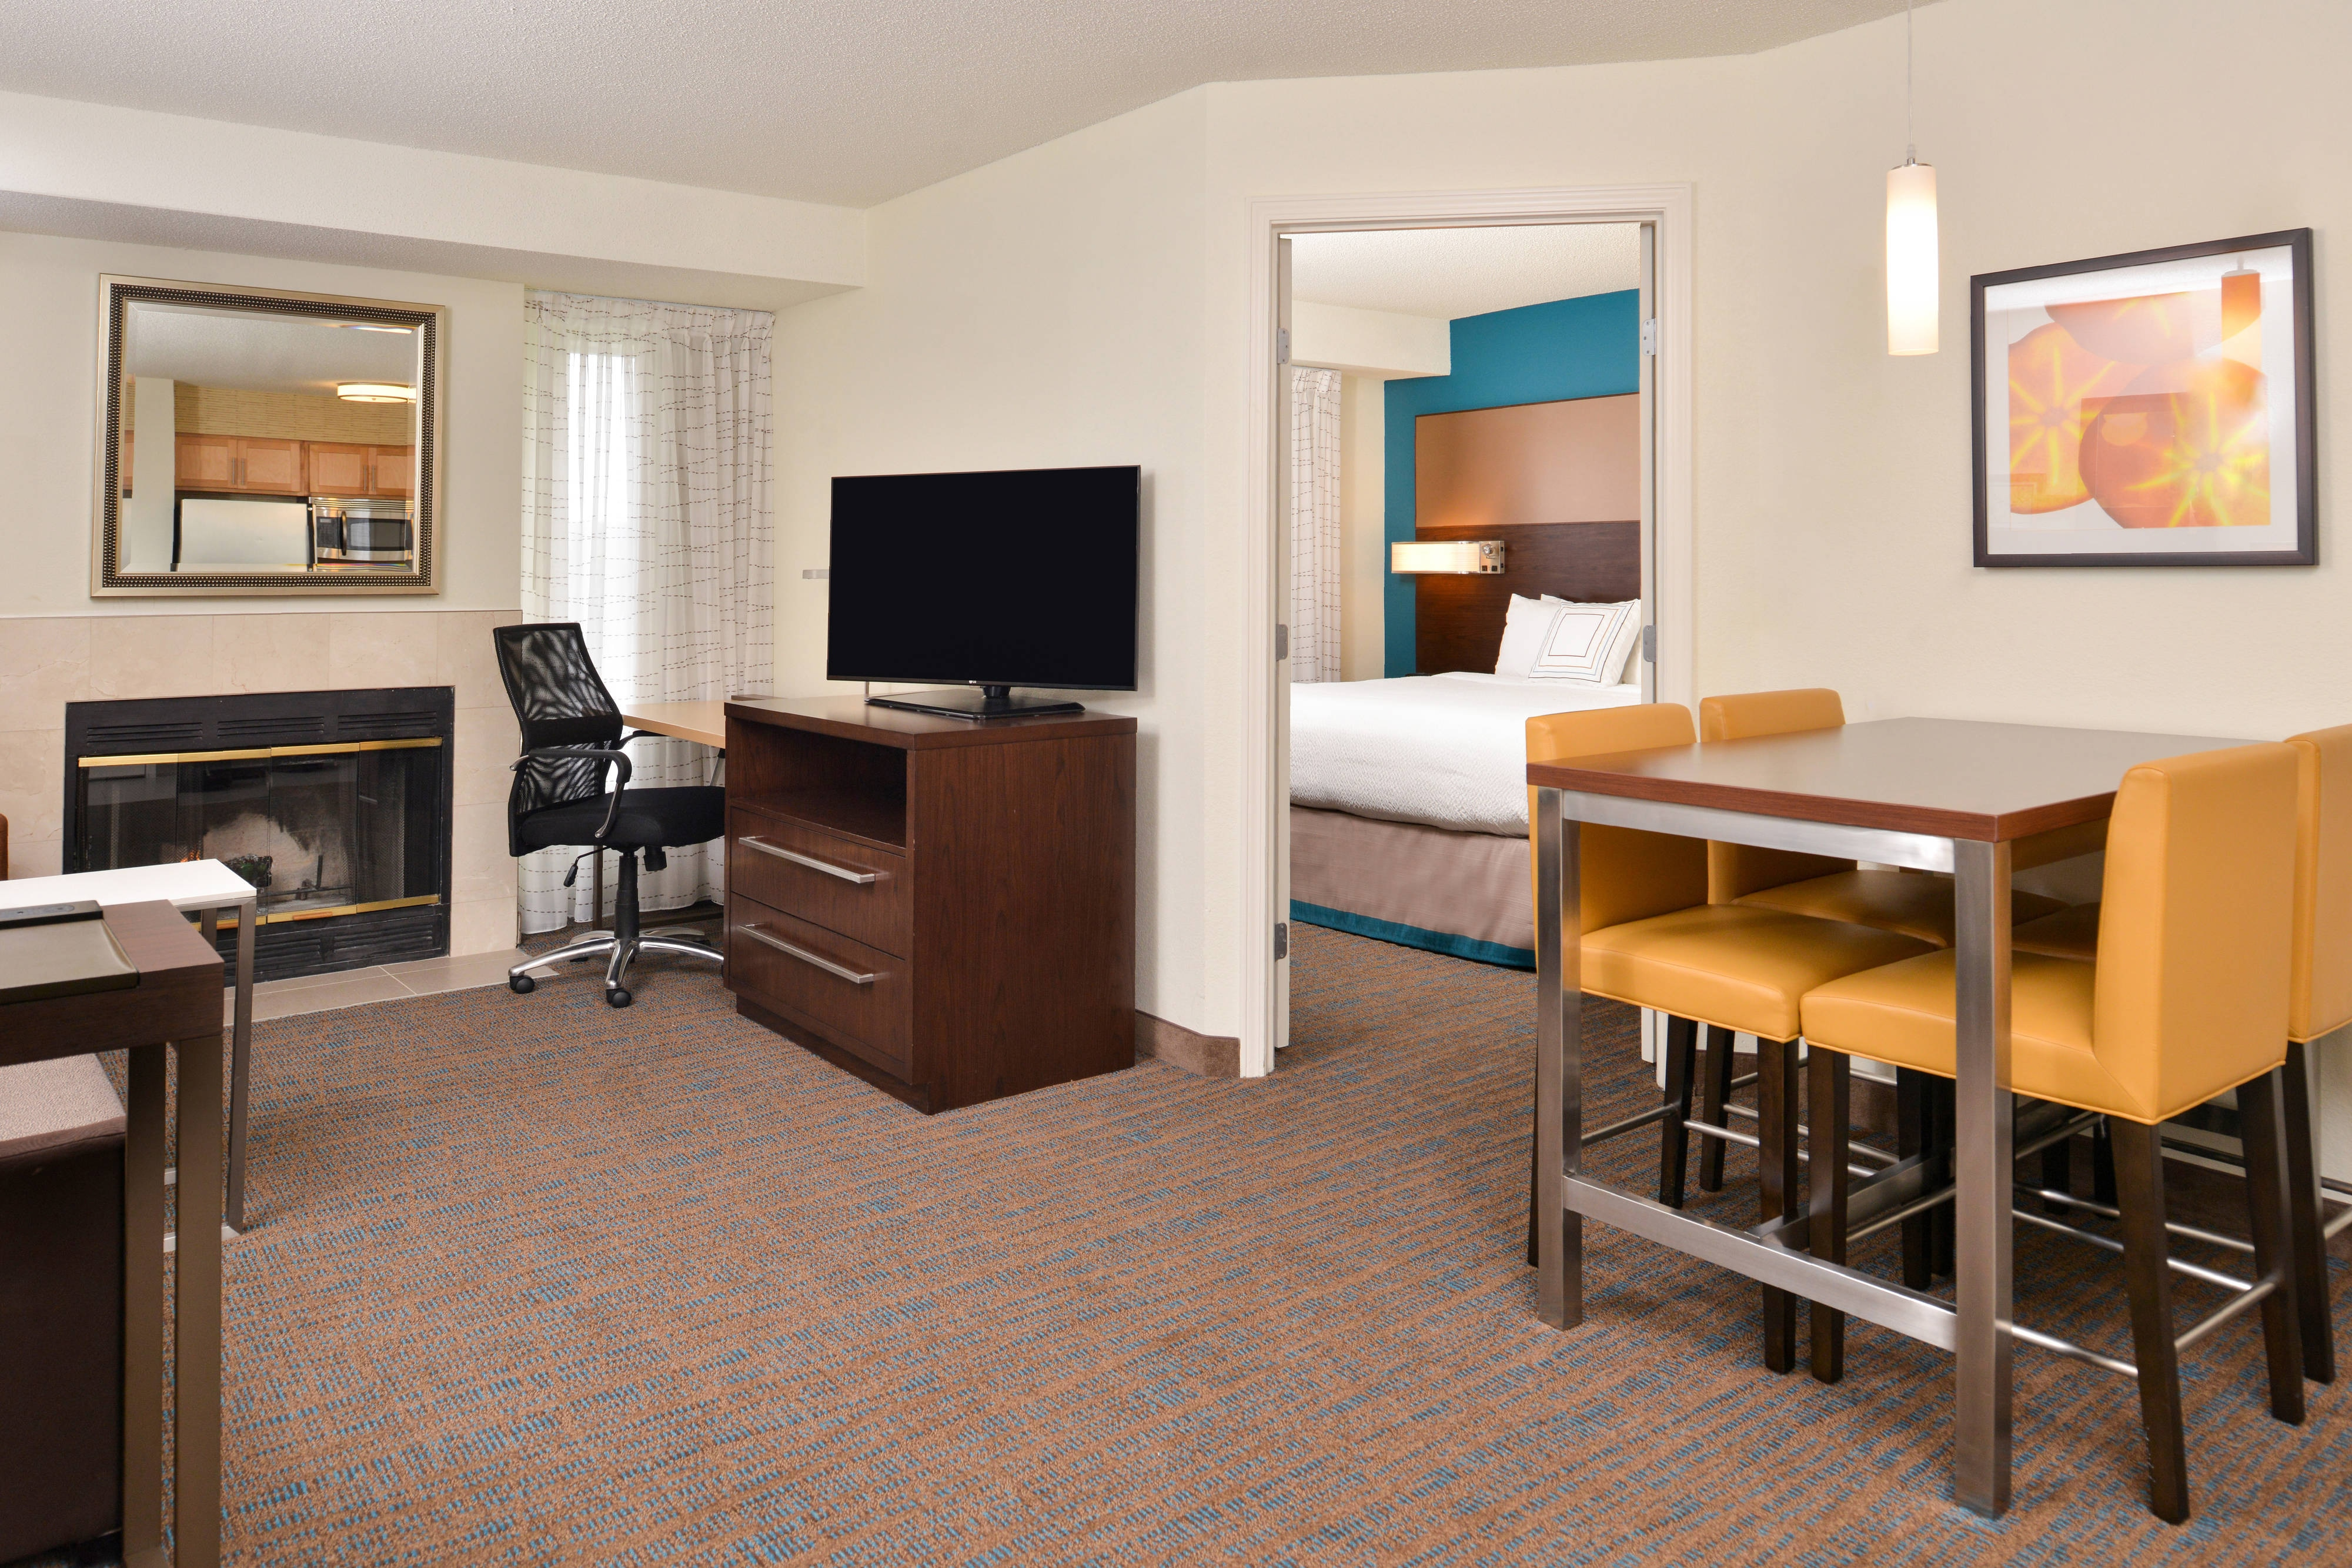 Branson hotels residence inn by marriott branson - Hotels that have 2 bedroom suites ...